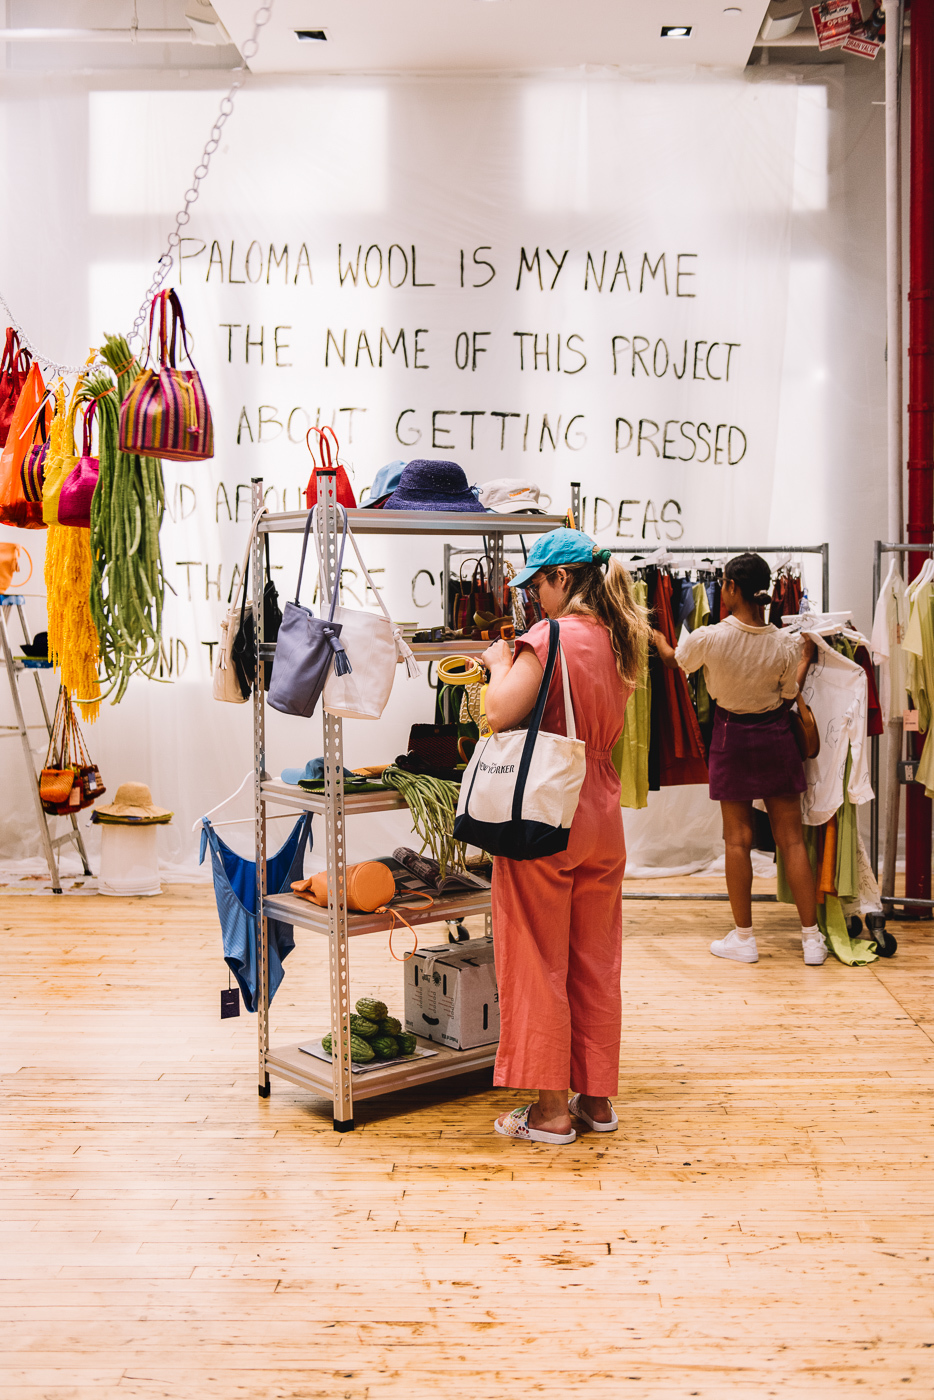 Paloma Wool, pop up, how to build a pop up, New York pop up, things to see in New York, short-term retail